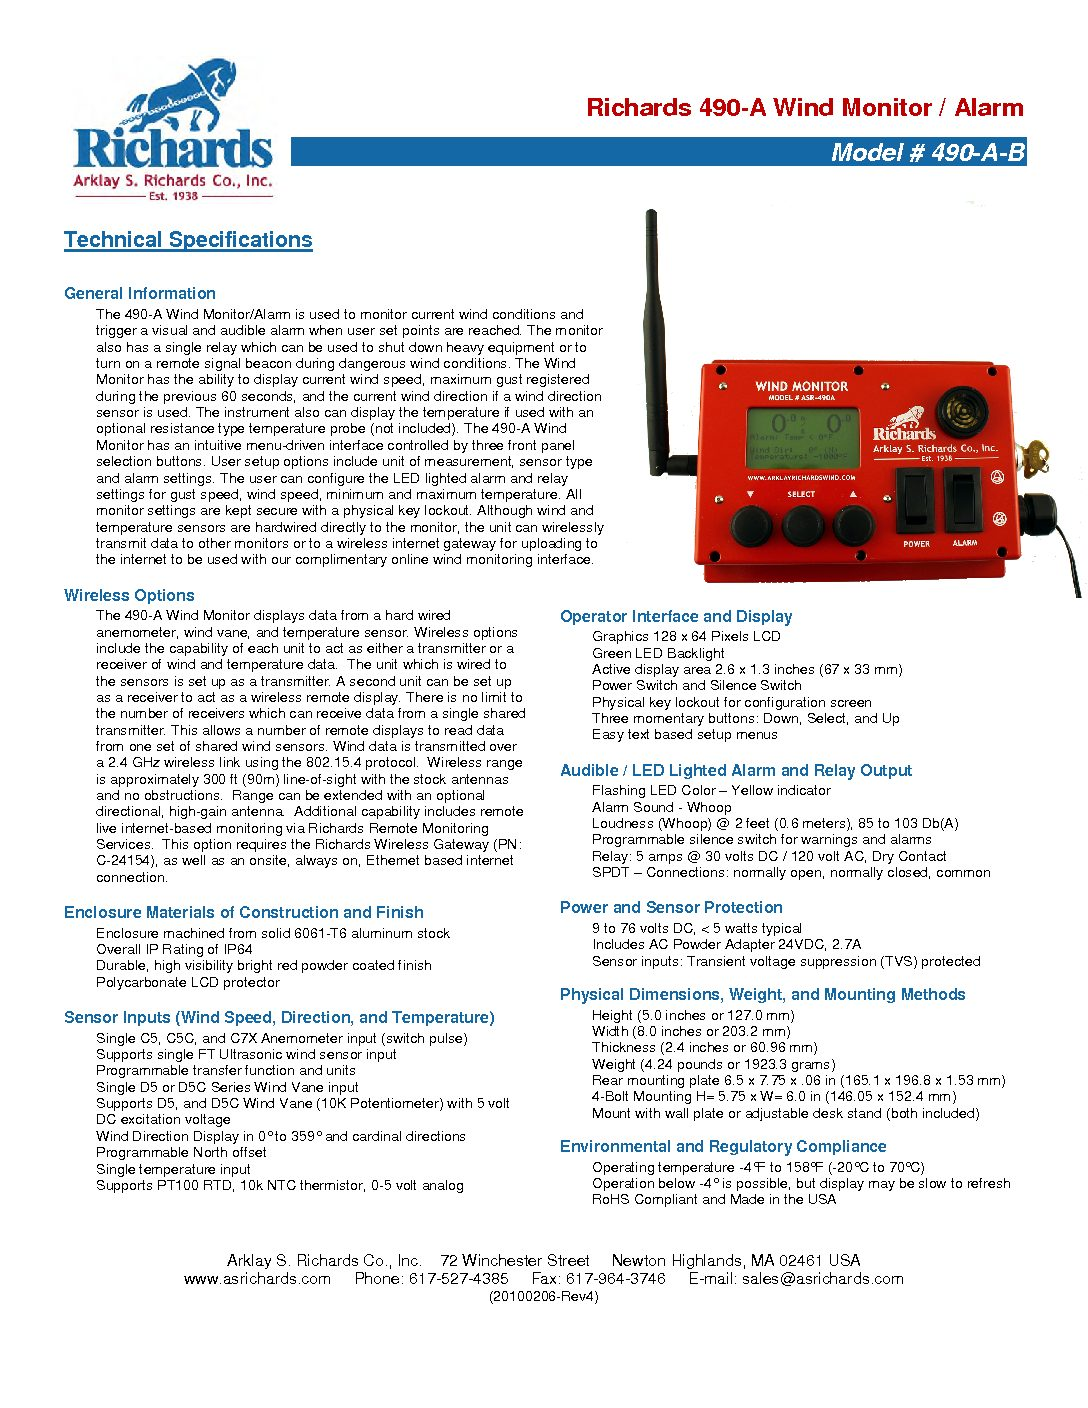 490_A_B Wind Monitor Specifications